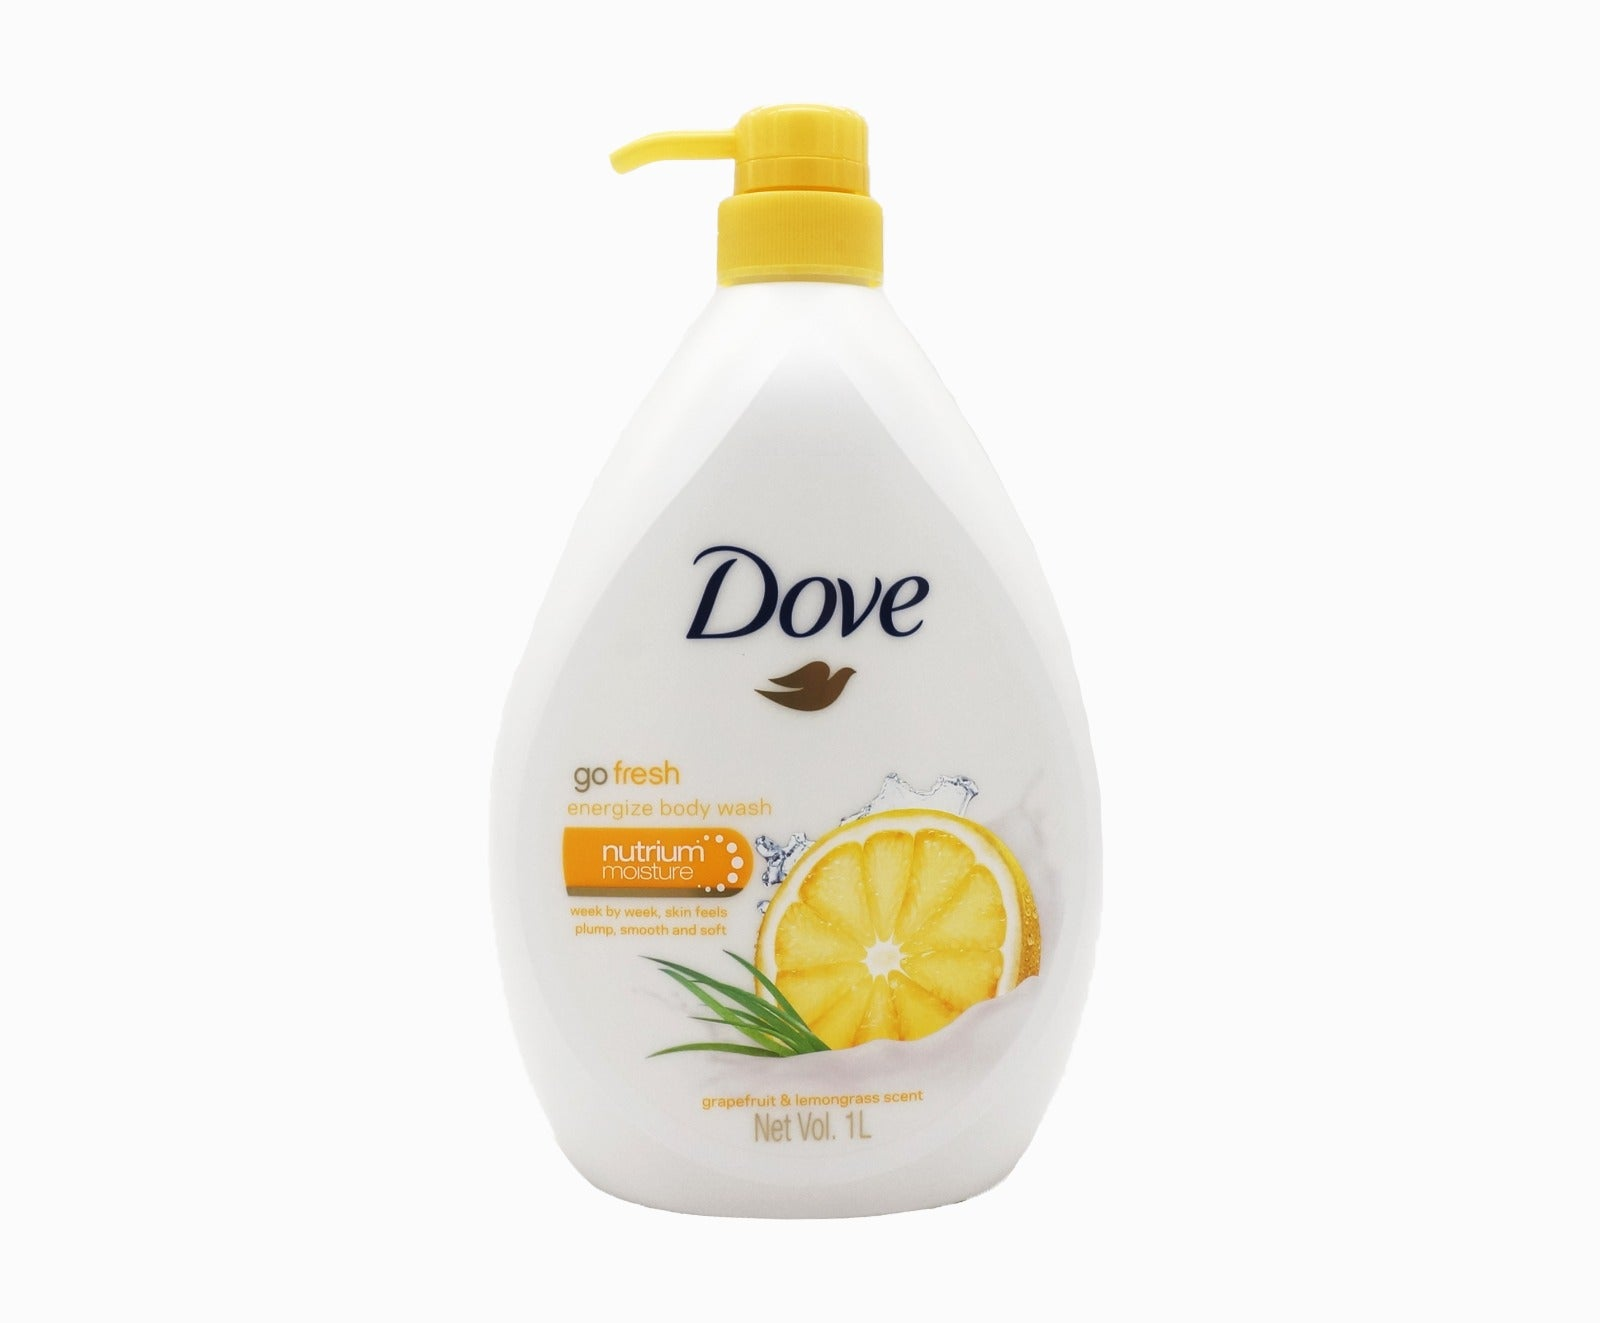 Dove Shower Cream - GoFresh Energize (1L – Piece)